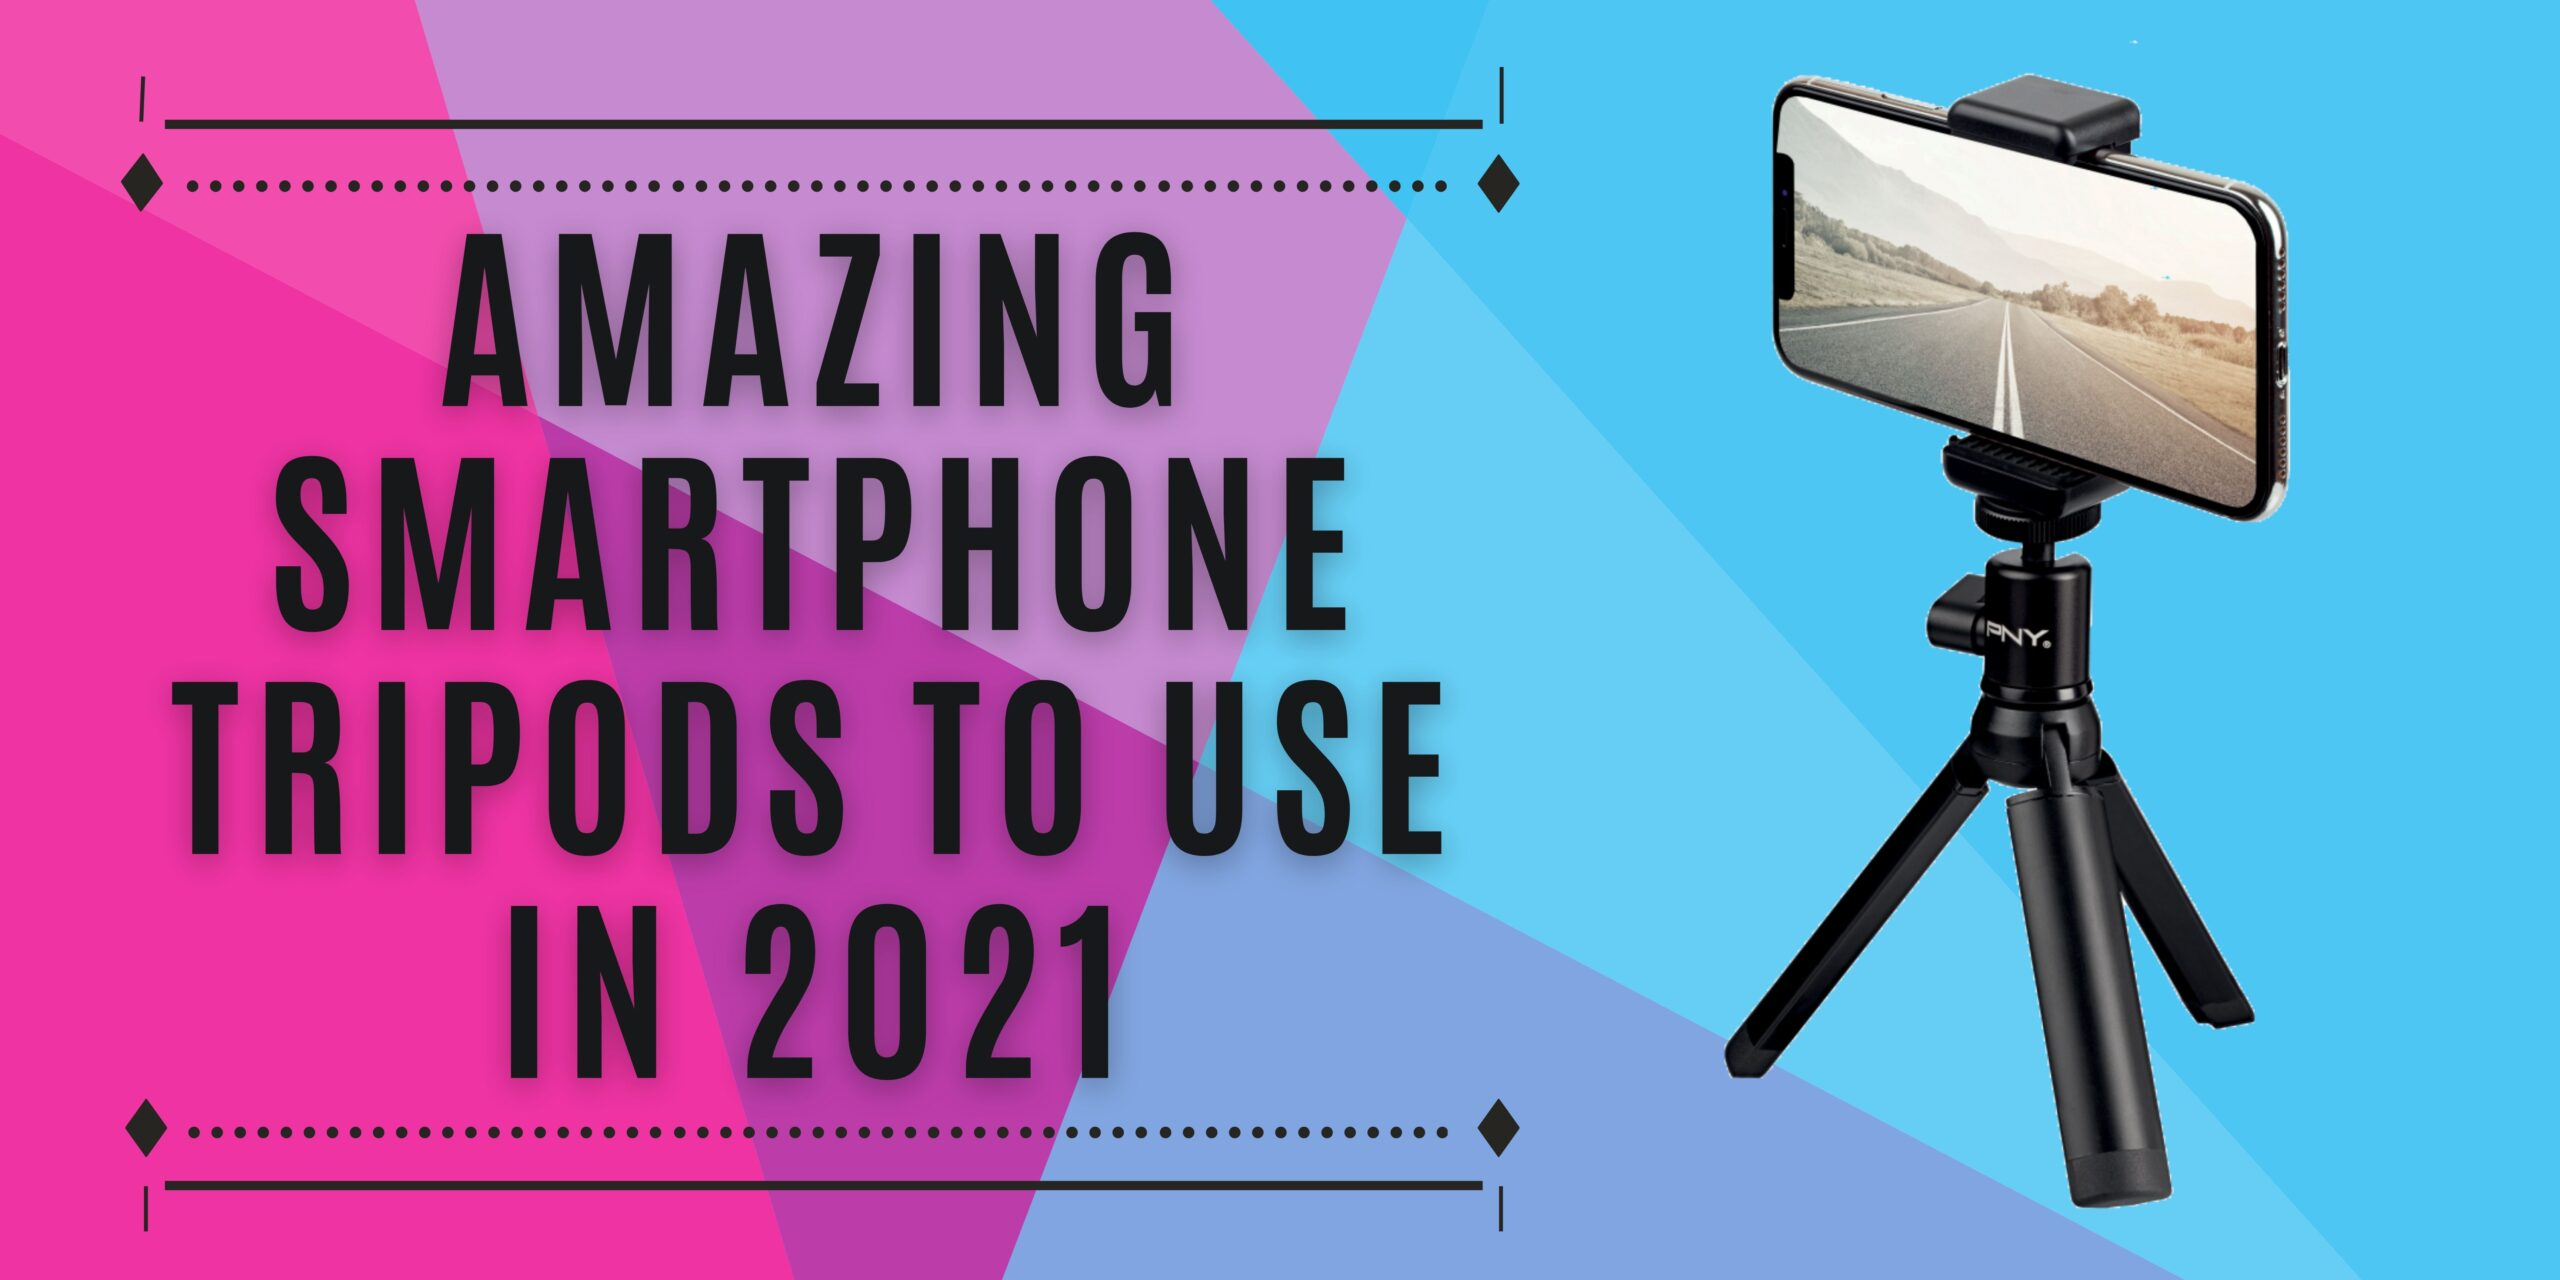 3 Amazing Smartphone Tripods to use in 2021